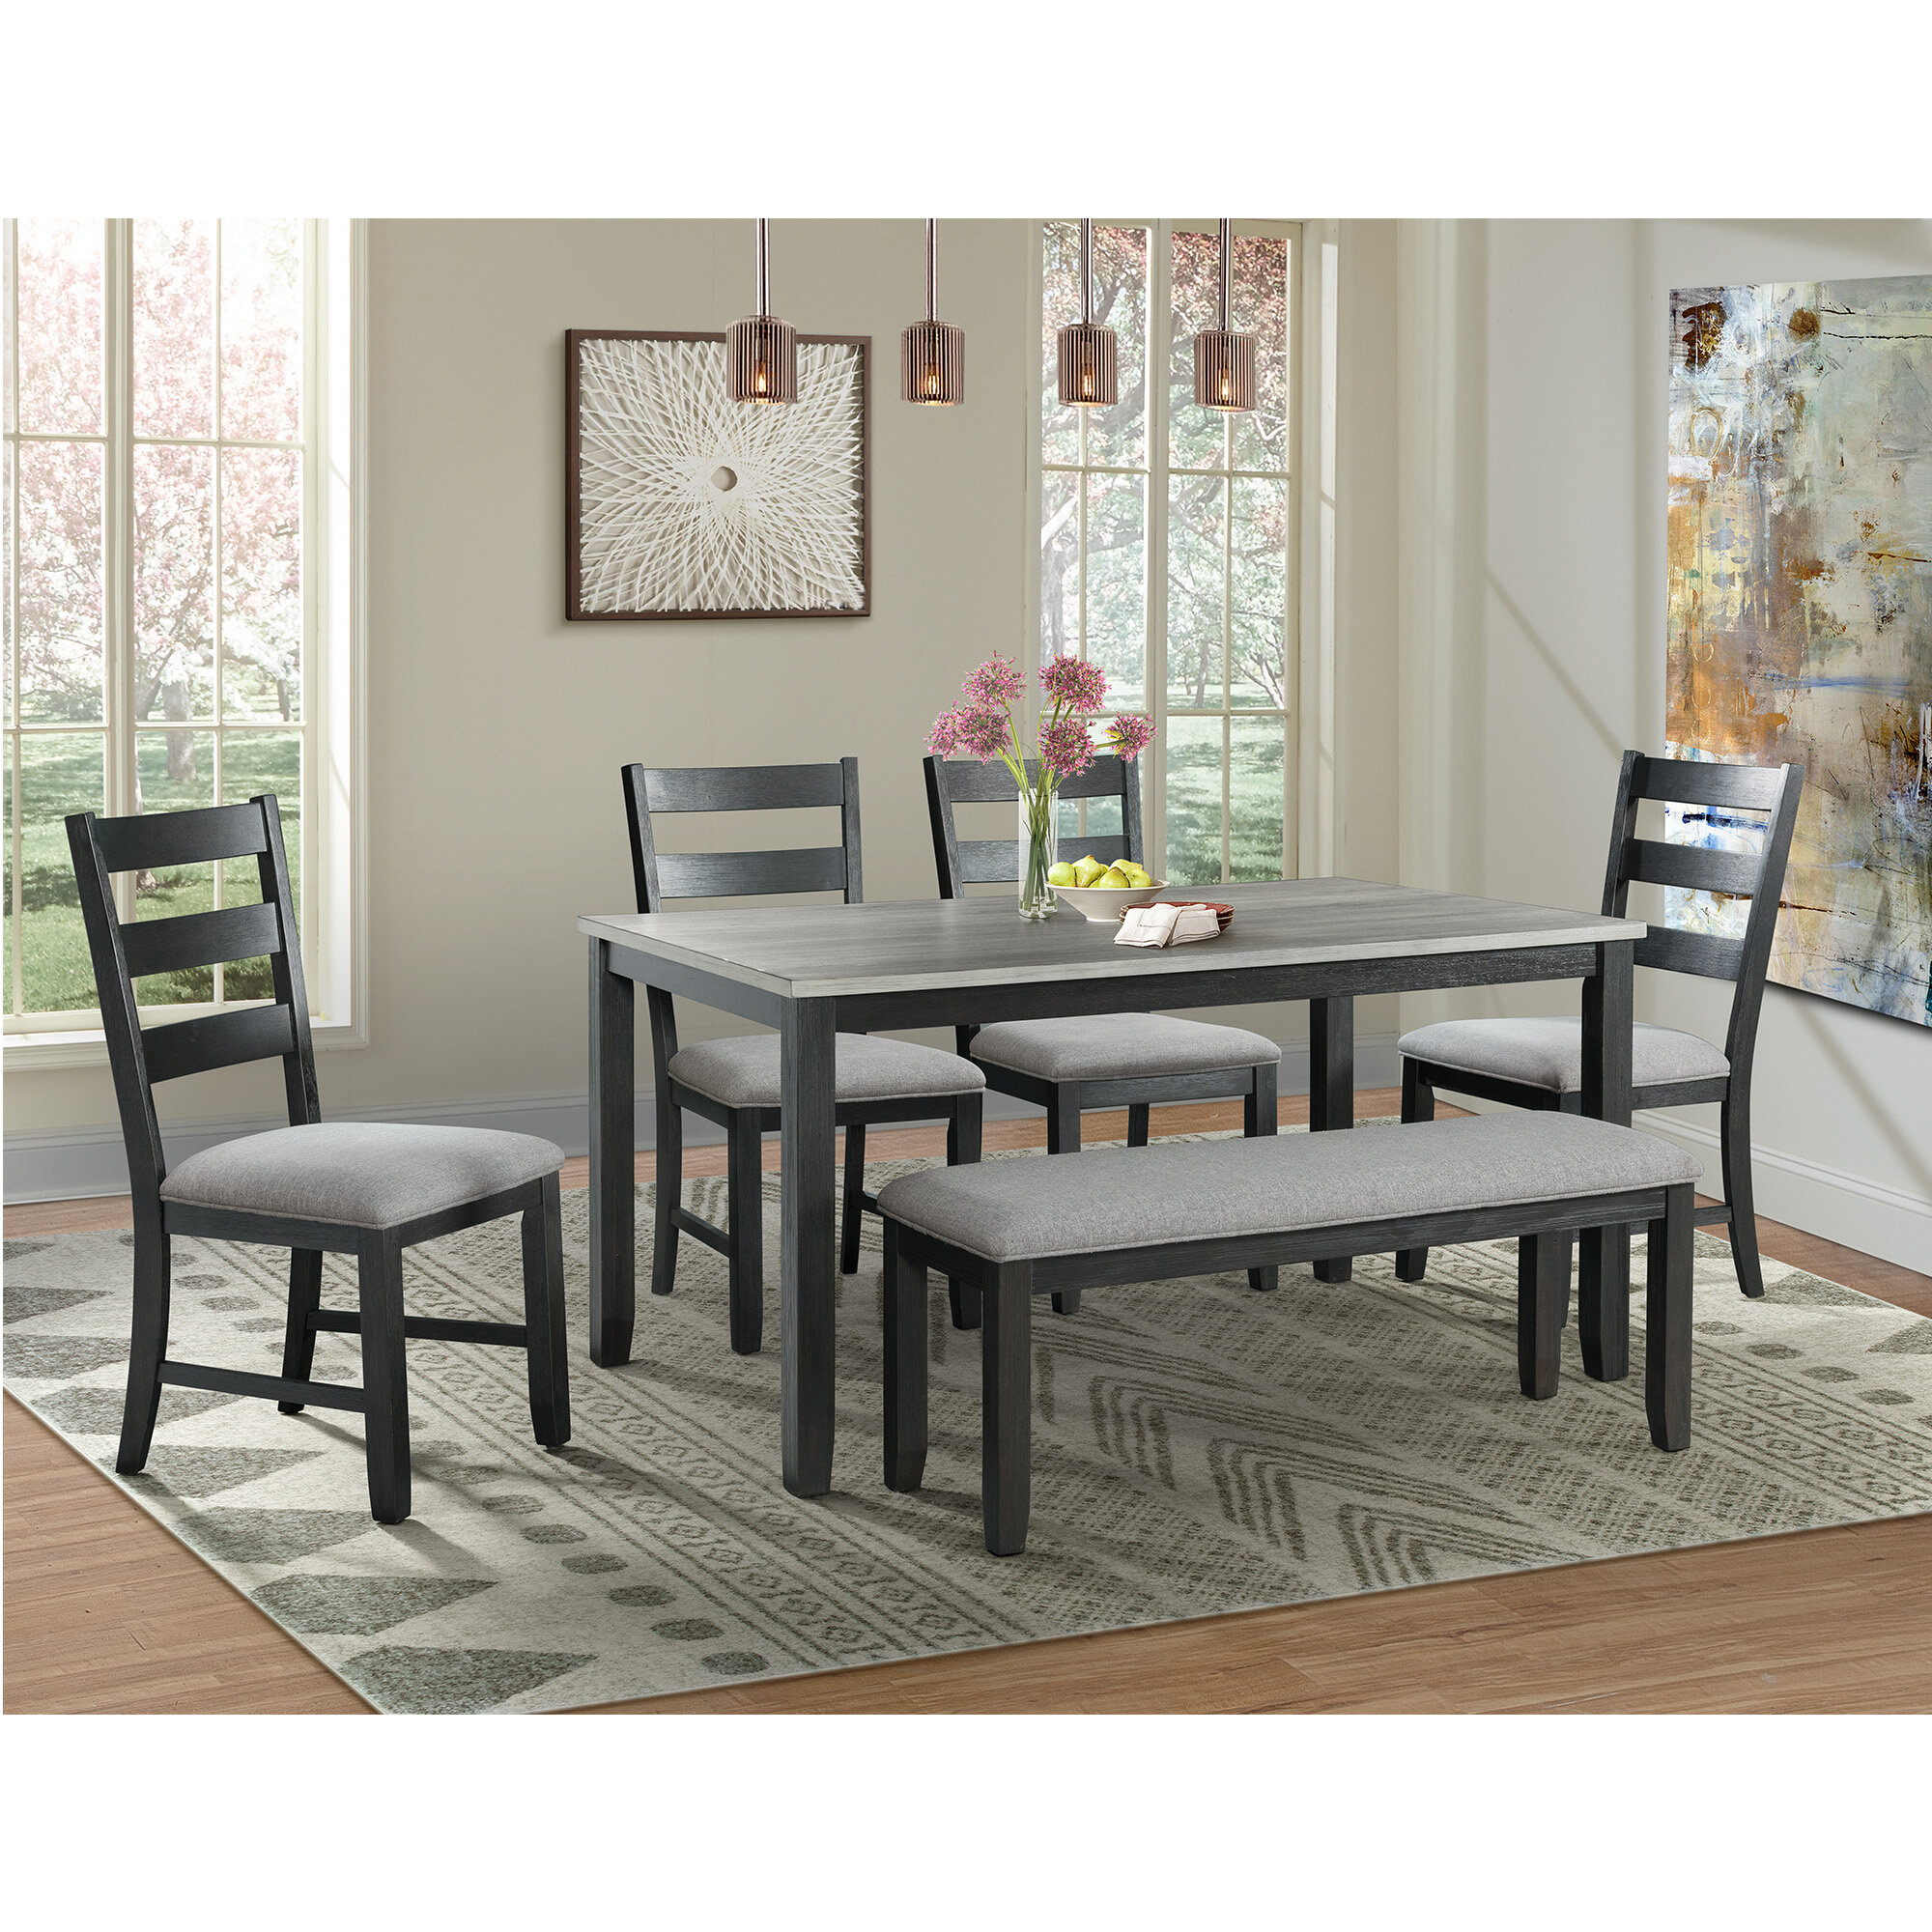 Wayfair Bench Small Kitchen Dining Room Sets You Ll Love In 2021